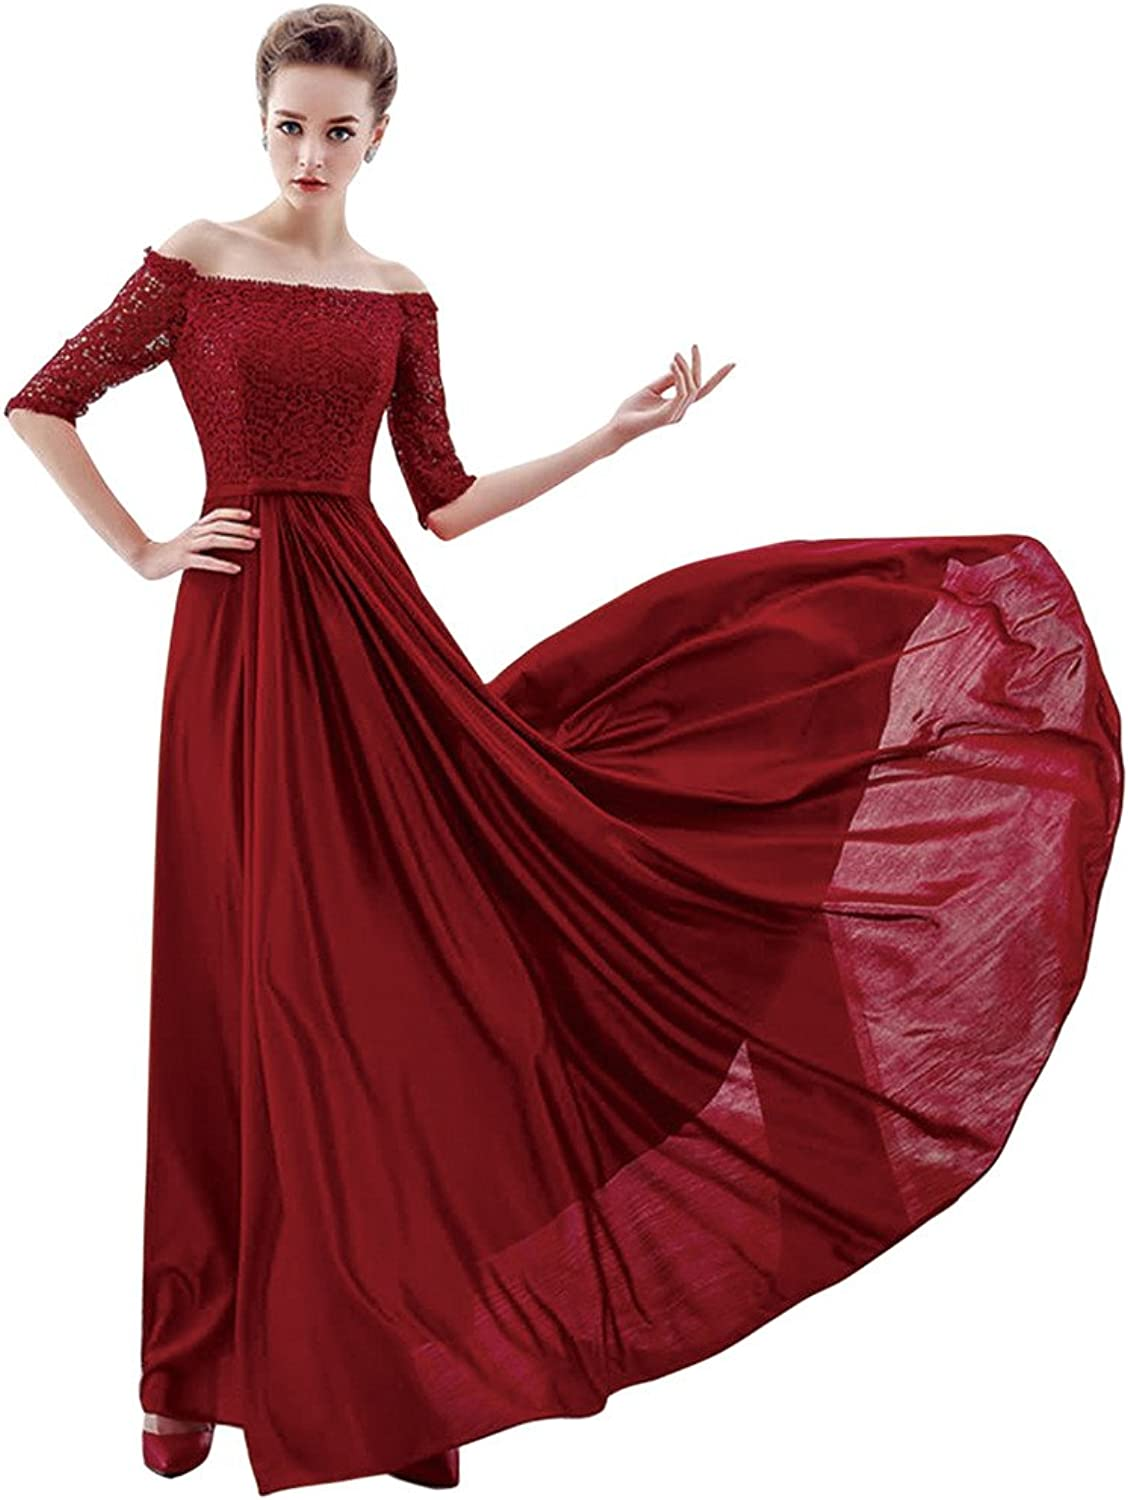 BessWedding Women's 2016 Red Lace Off The Shoulder Long Prom Dress Wedding Gowns